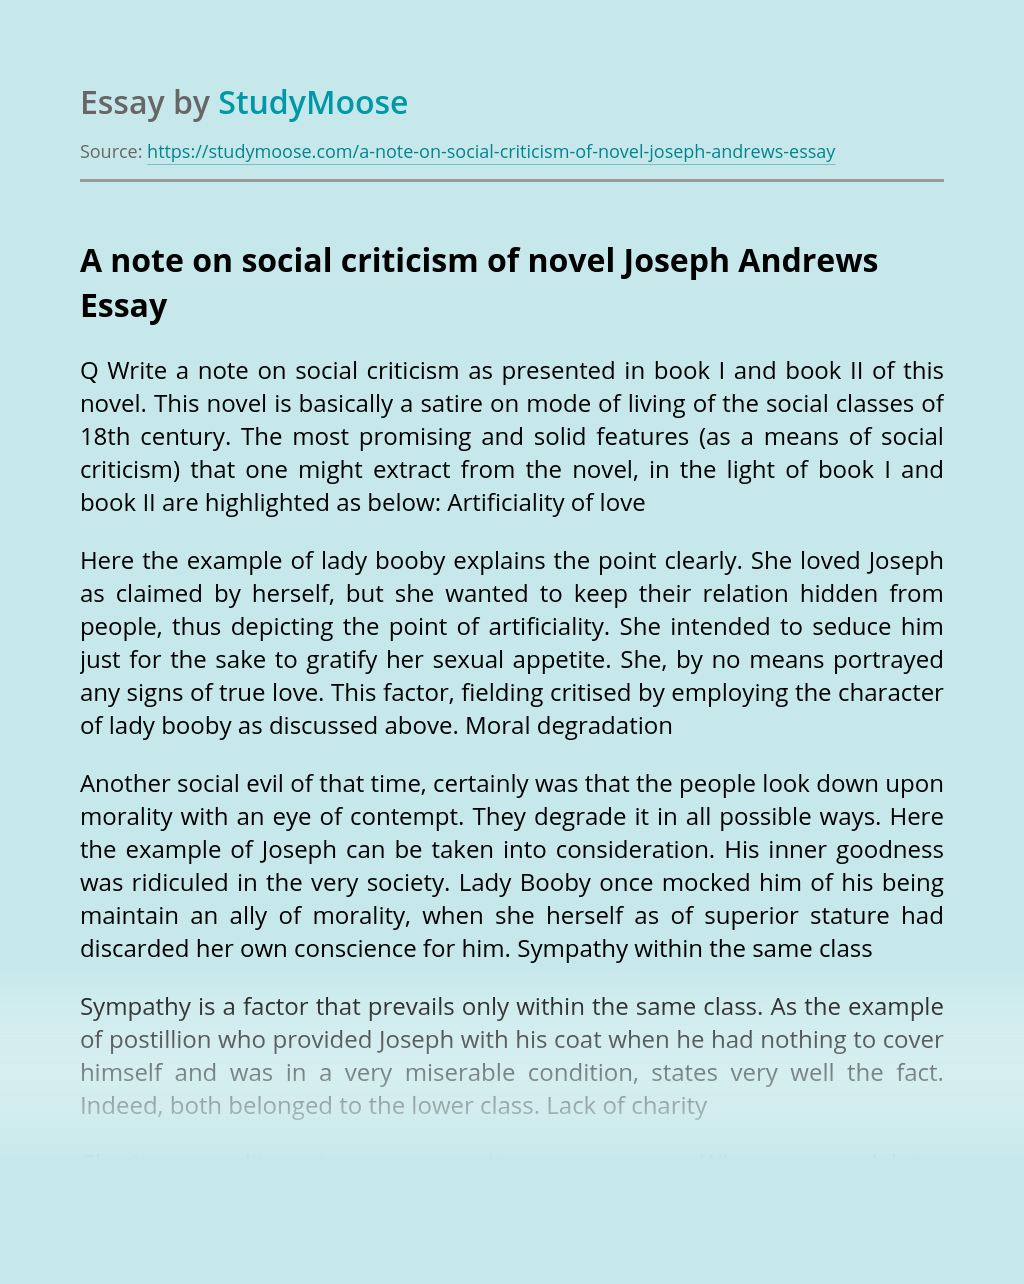 A note on social criticism of novel Joseph Andrews